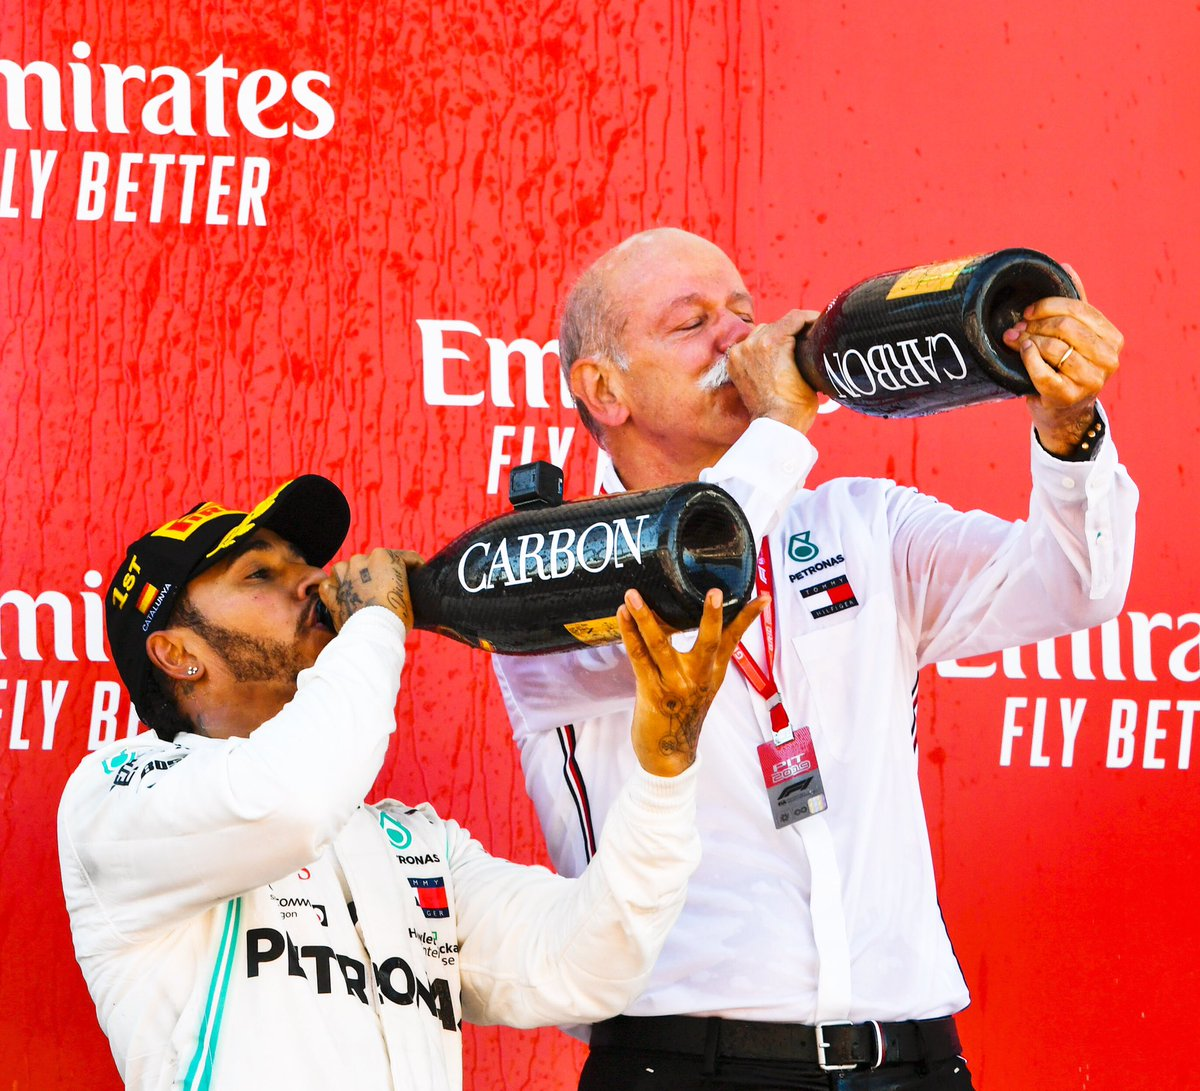 💭 'We like to drink with Zetsche...' https://t.co/1r7phHh0Eg